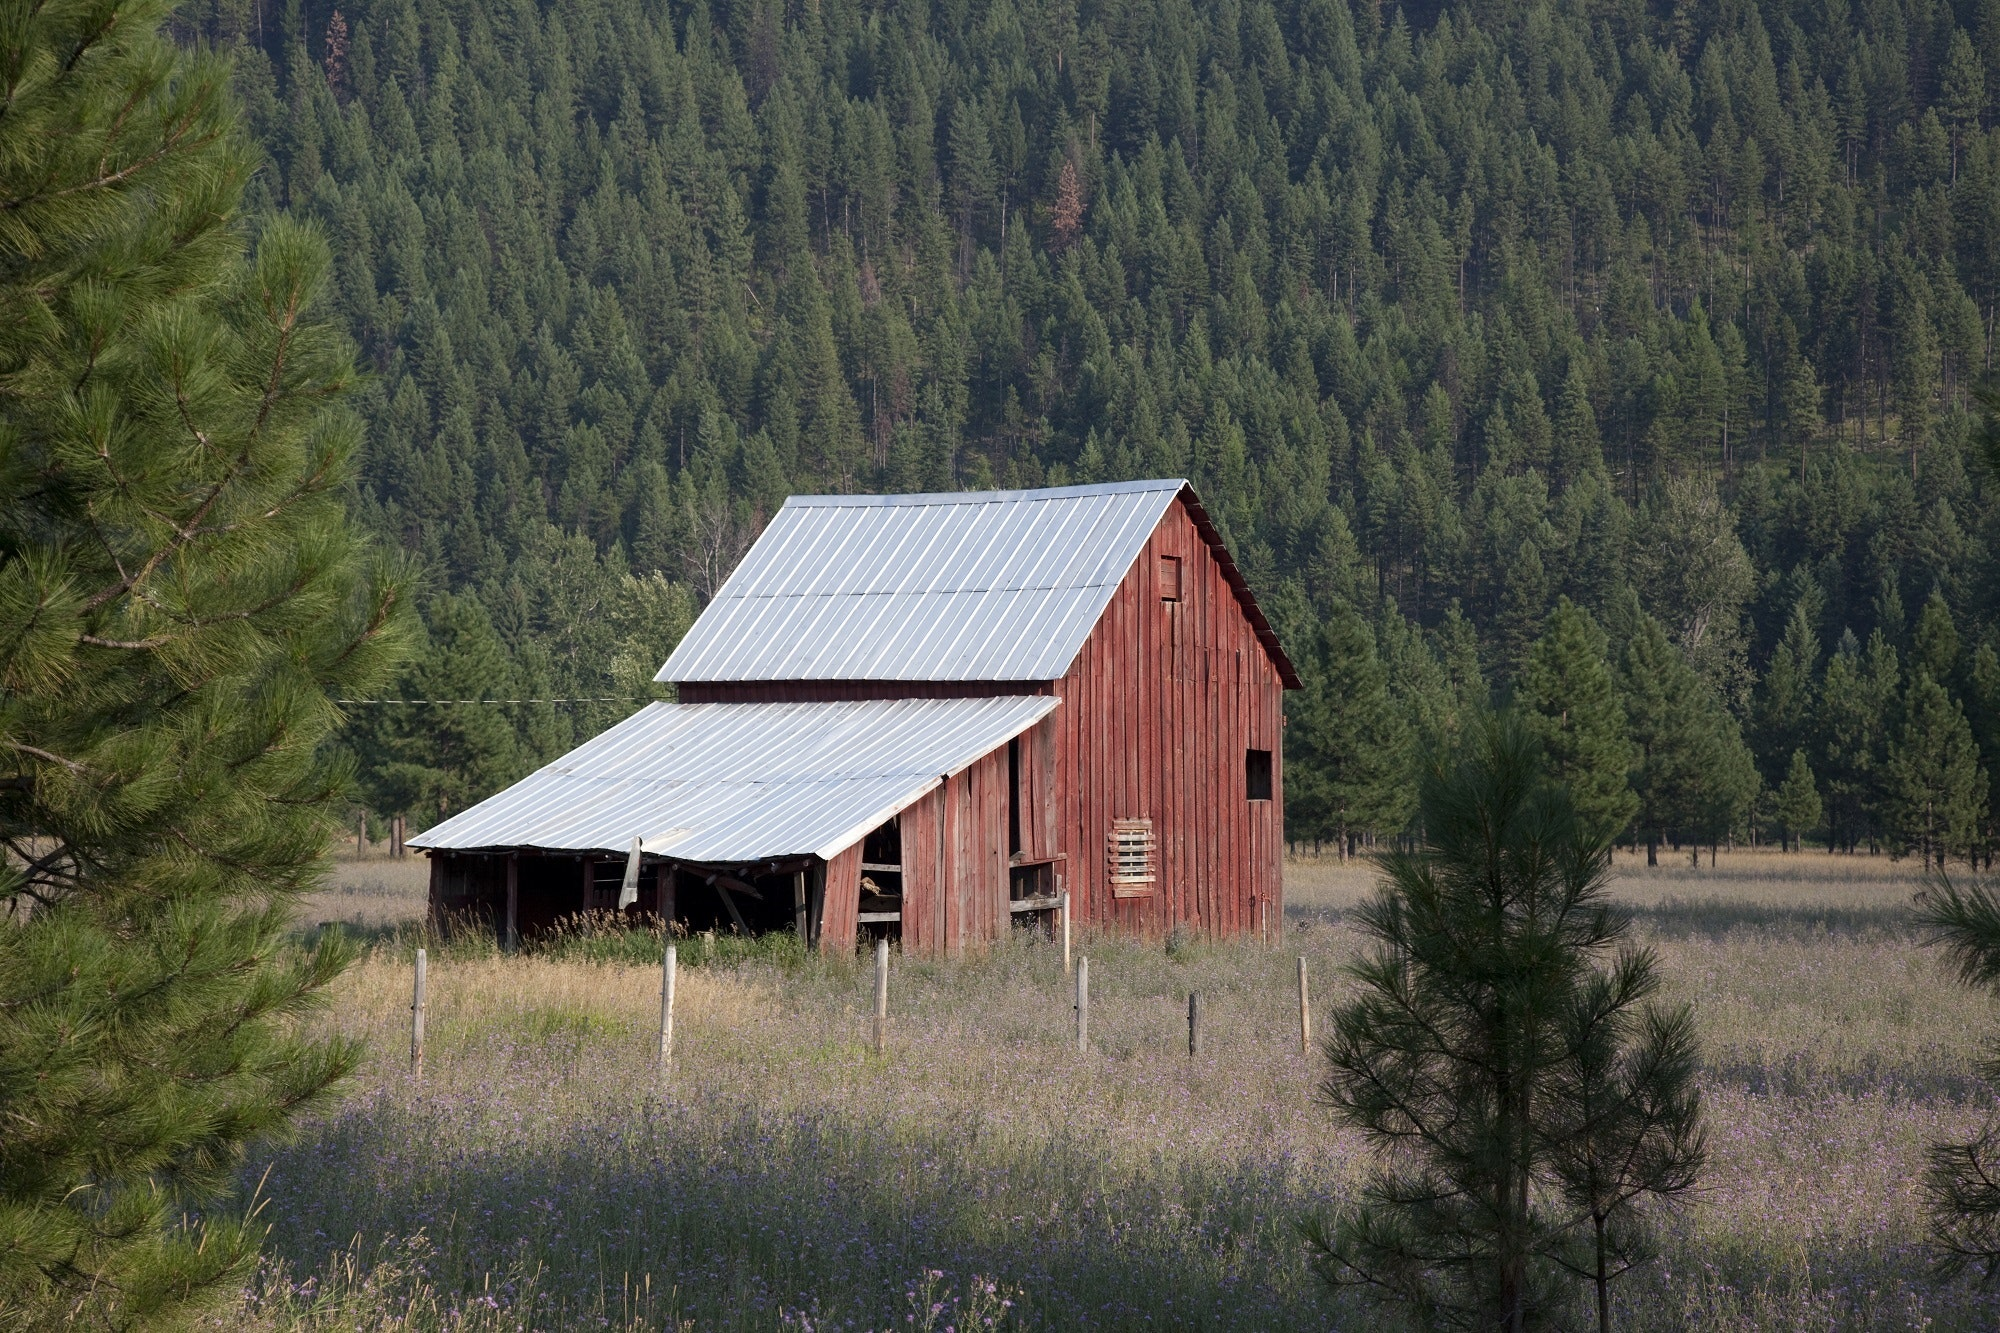 Red wooden barn during daytime photo